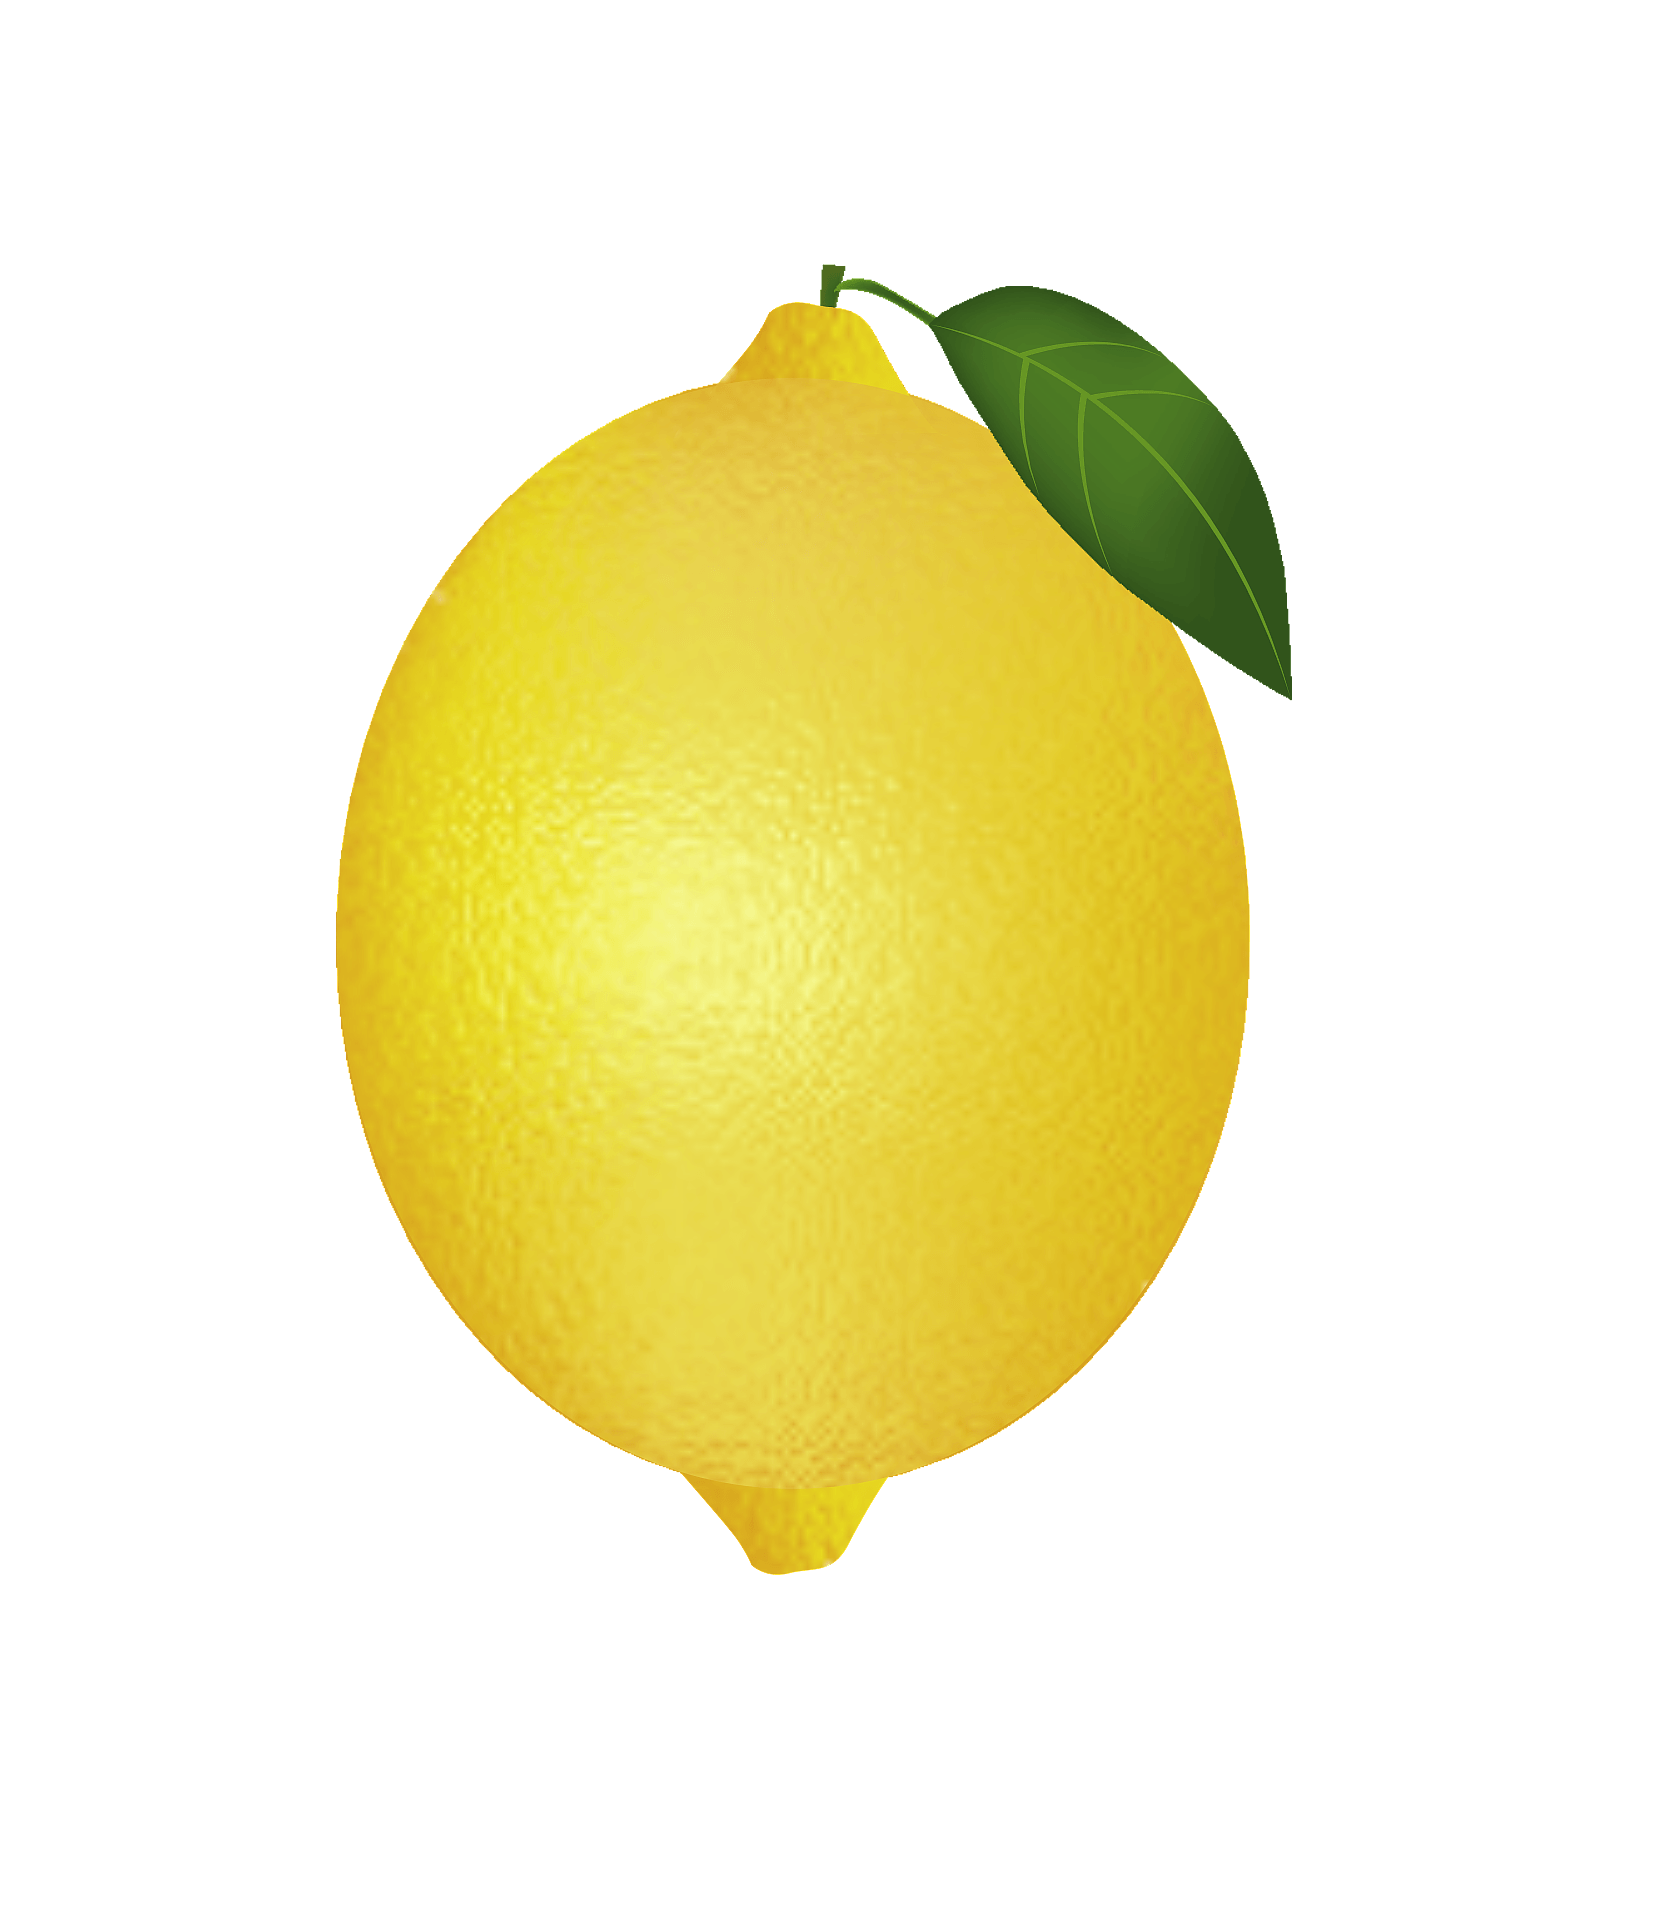 Lemon Clipart Free Download Transparent Png Creazilla Download the free graphic resources in the form of png, eps, ai or psd. lemon clipart free download